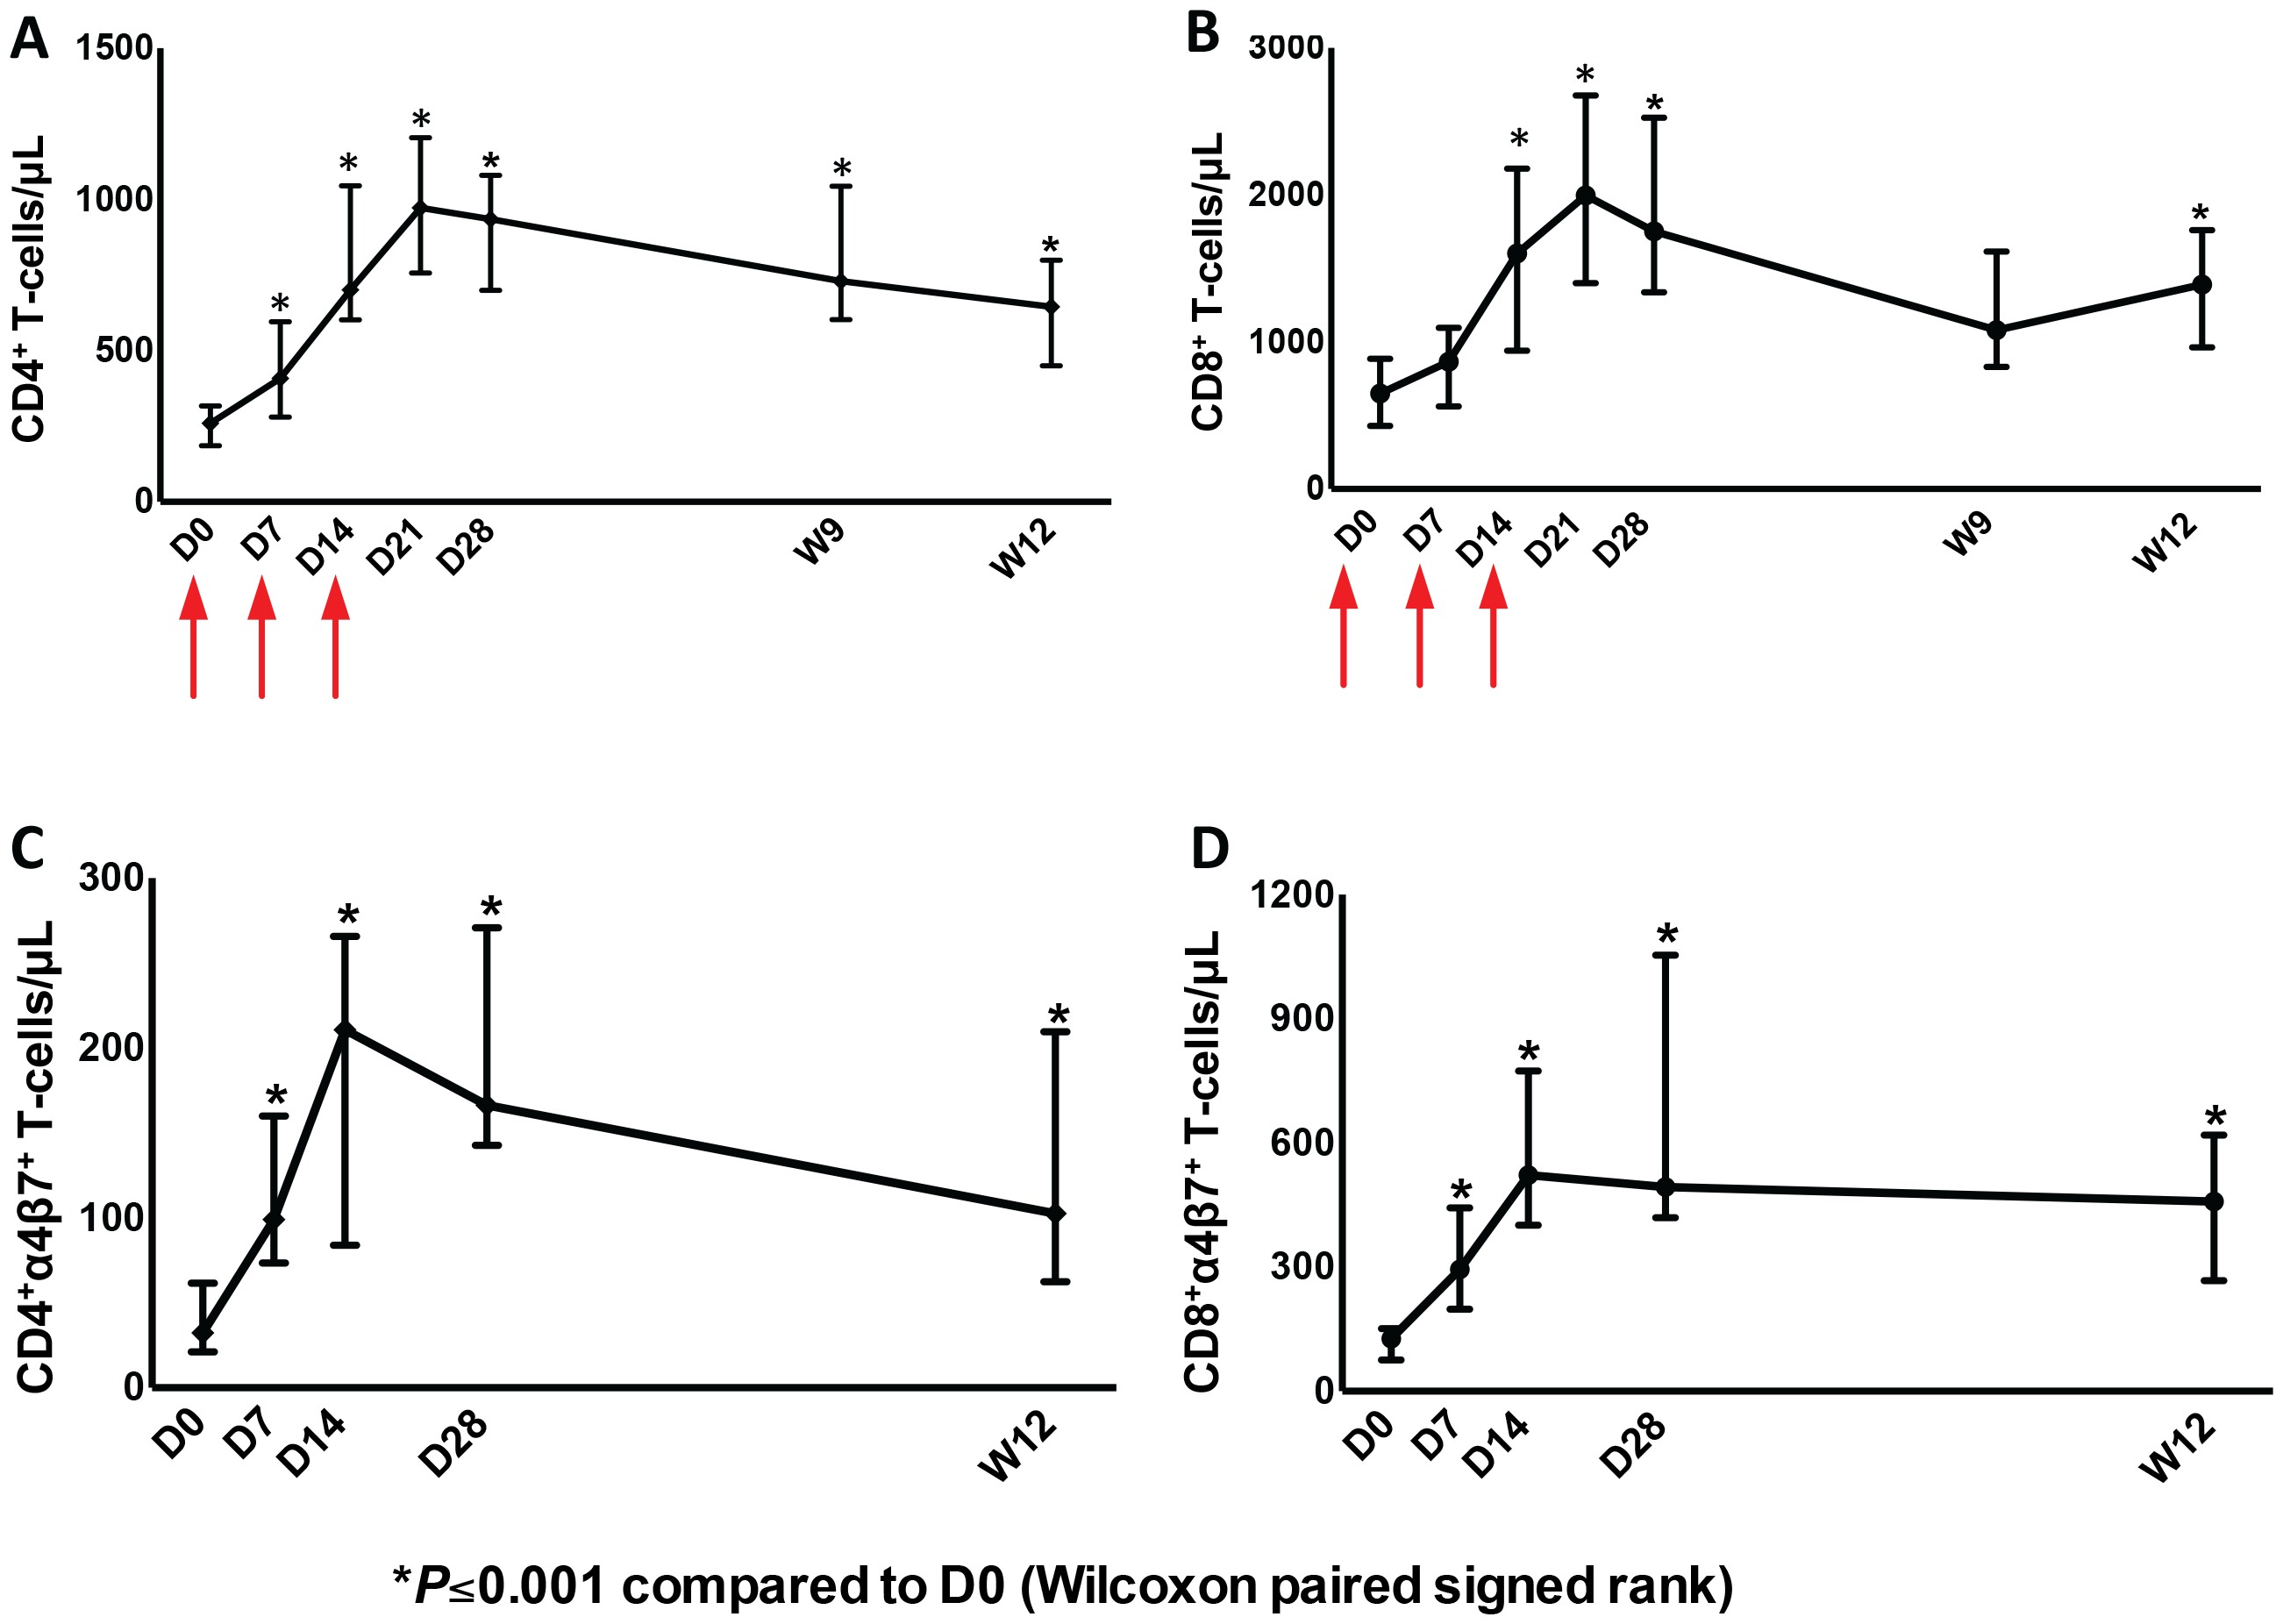 Increases of CD4<sup>+</sup> and CD8<sup>+</sup> T-cells as well as CD4<sup>+</sup> and CD8<sup>+</sup> T-cells expressing α4β7 in peripheral blood after administration of r-hIL-7.